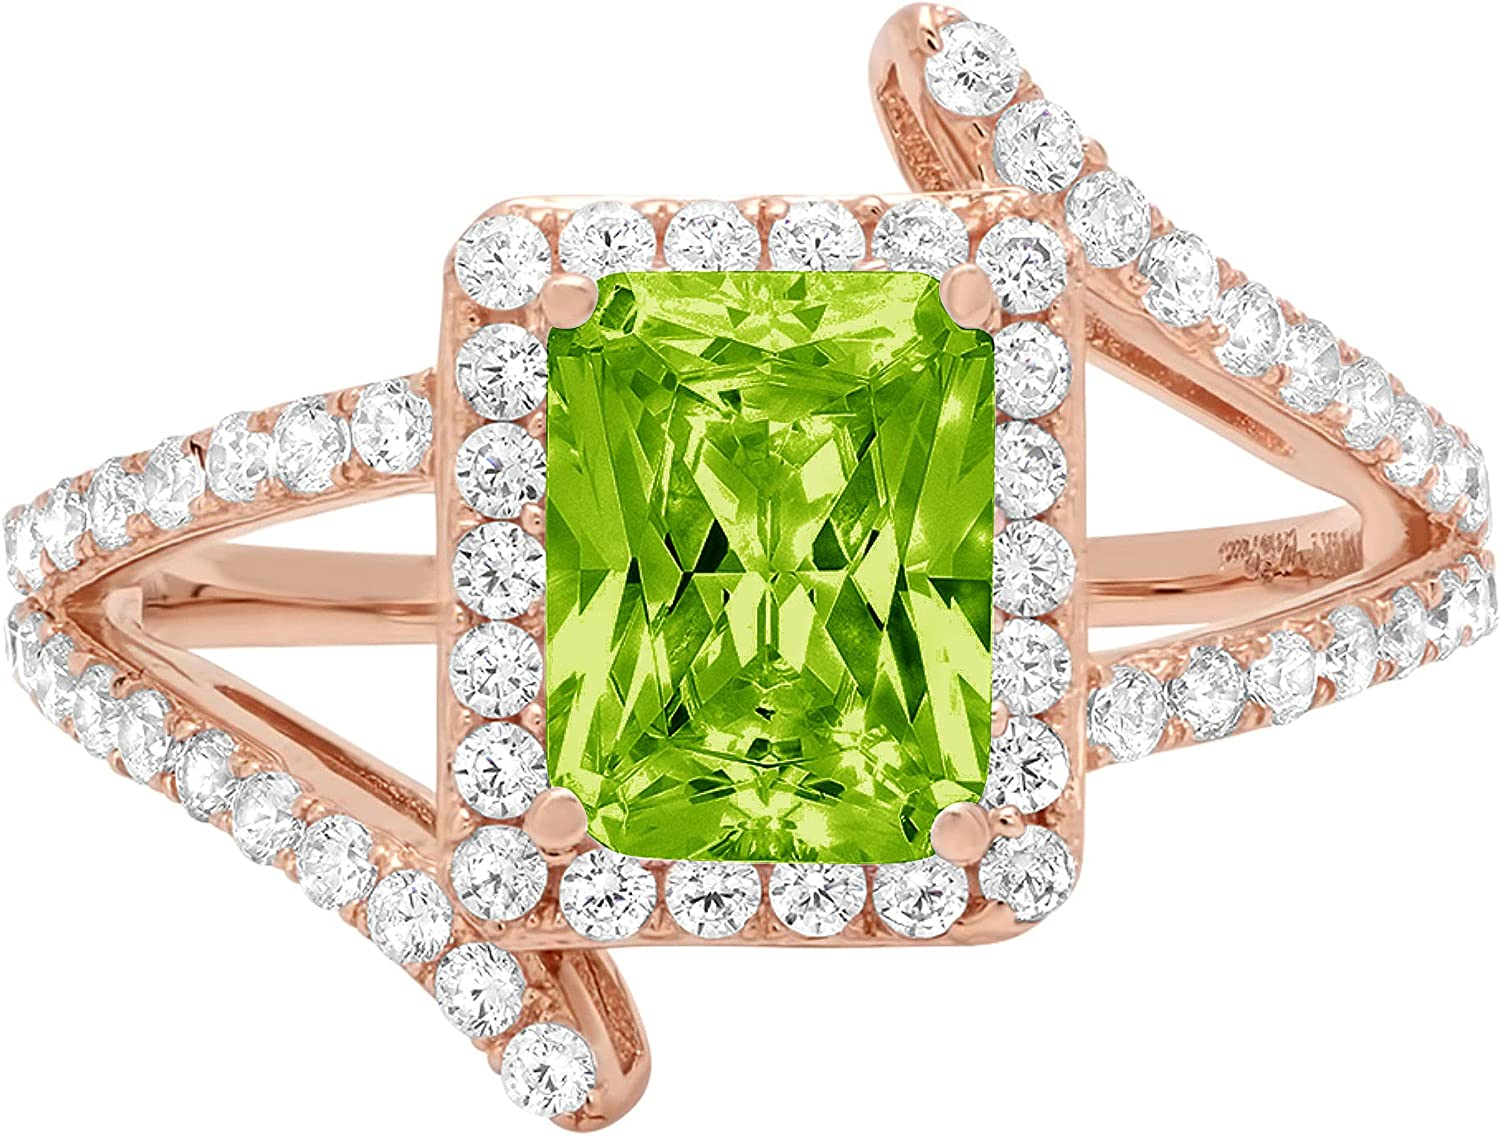 2.04ct Emerald Cut Solitaire with Accent Halo Criss Cross Genuine Natural Vivid Green Peridot Gemstone Ideal VVS1 Engagement Promise Statement Anniversary Bridal Wedding ring 14k Pink Rose Gold